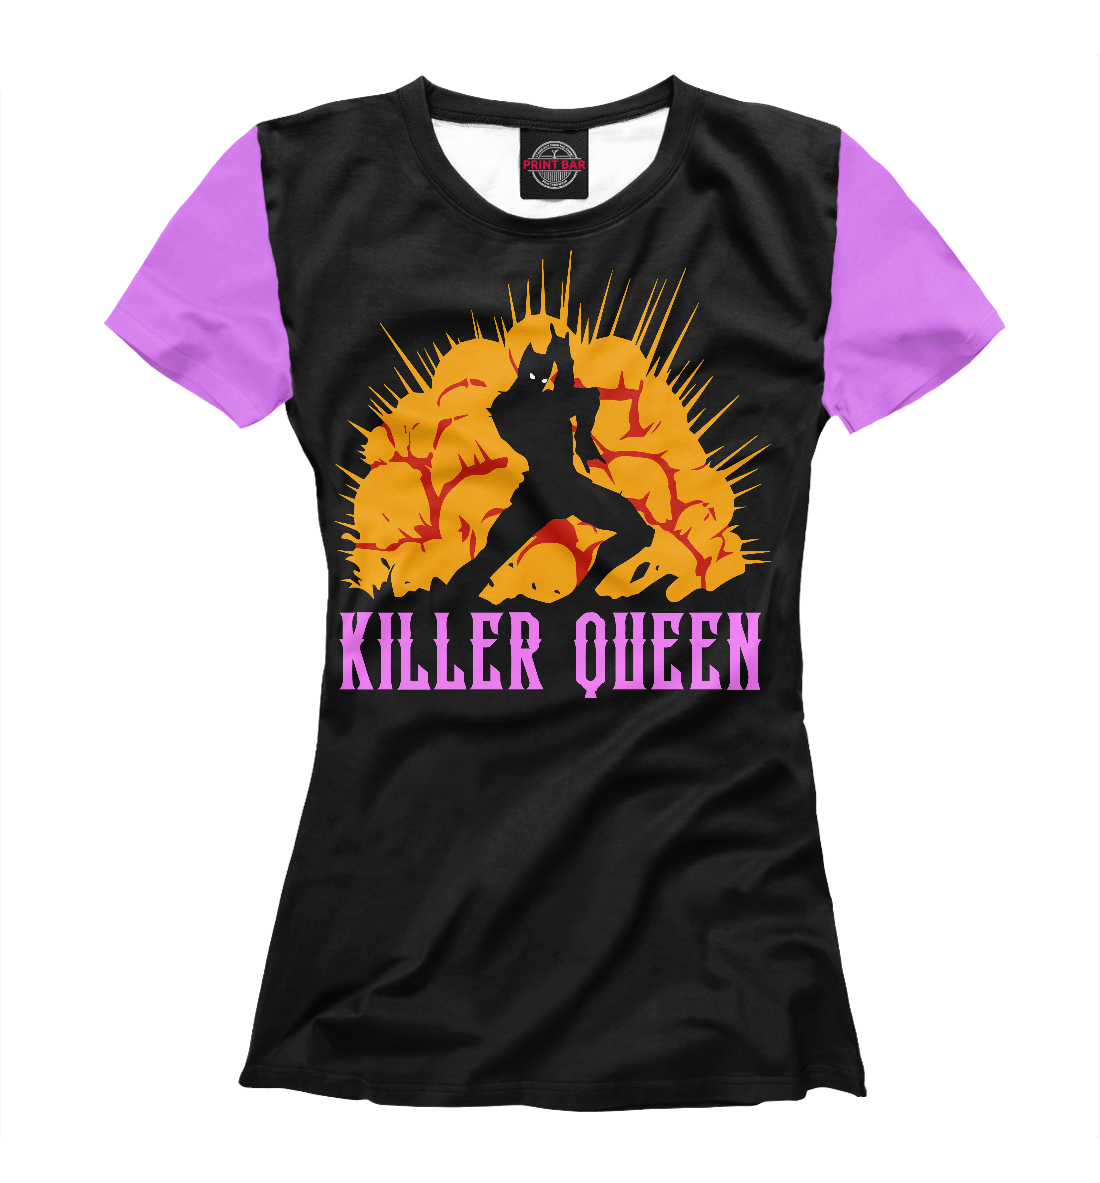 Купить Killer Queen, Printbar, Футболки, ANR-830953-fut-1